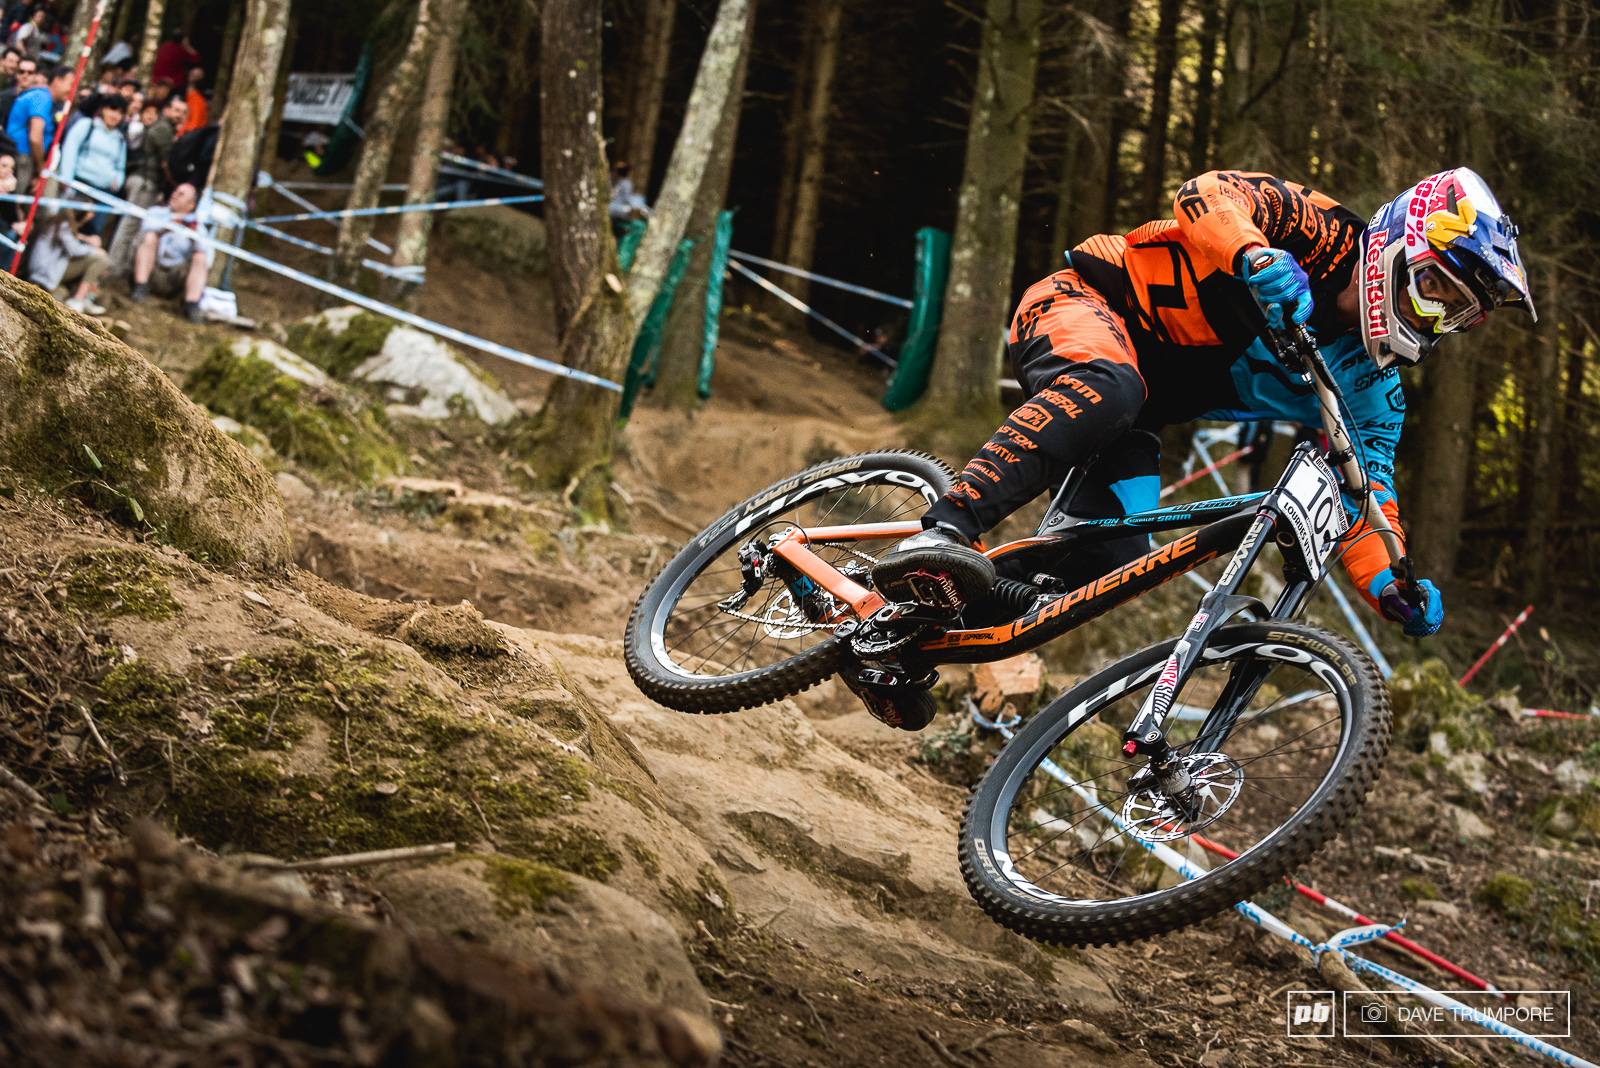 Loic started the year ranked 10th and finished as the World Champion.